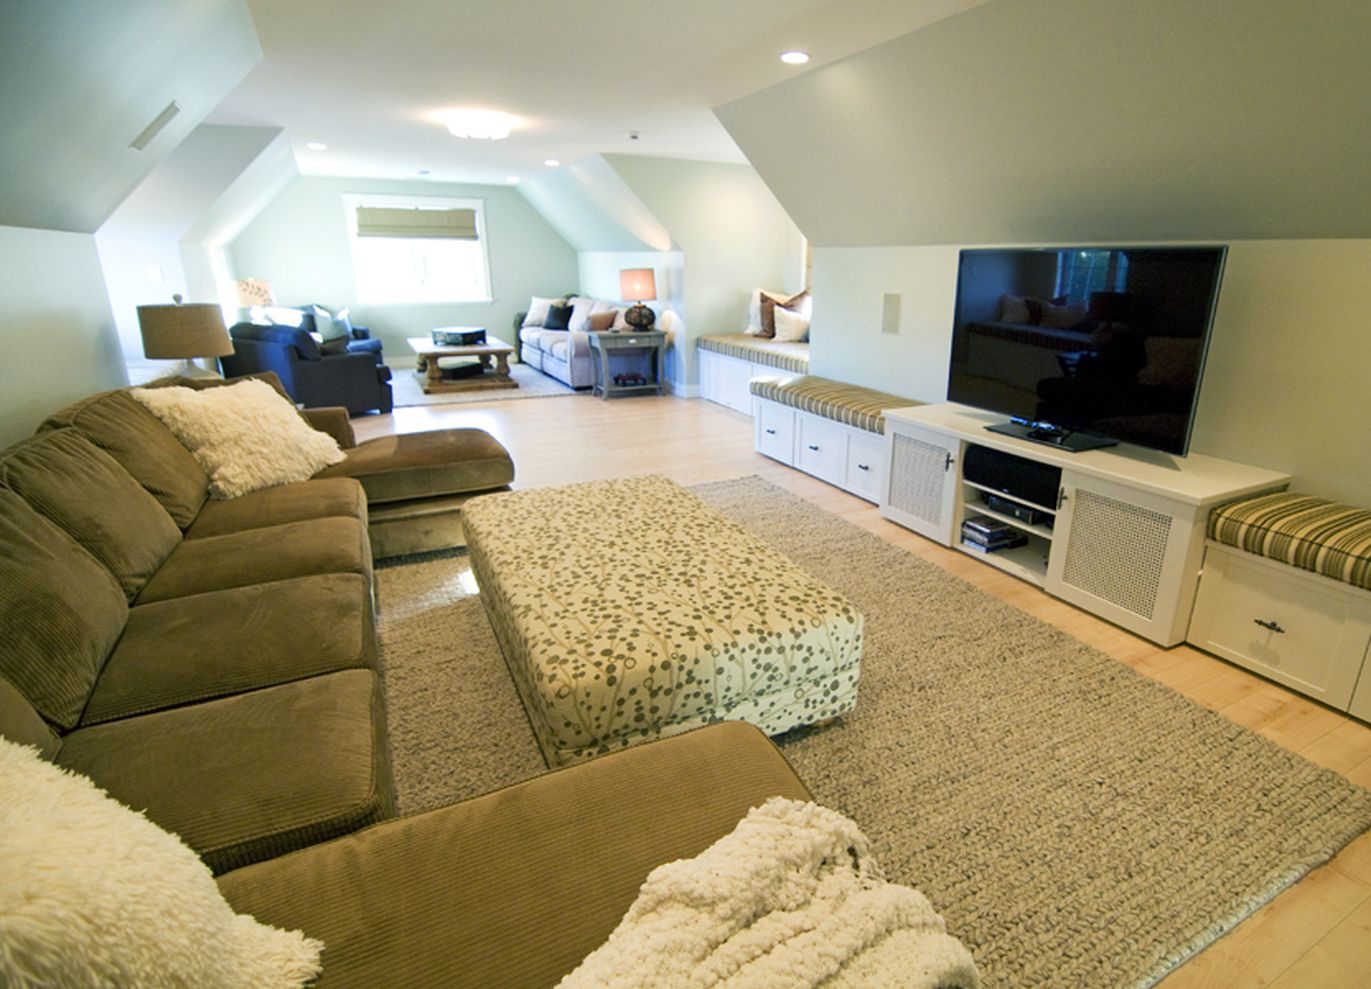 61 simple living room design ideas with tv round decor for Simple room design ideas